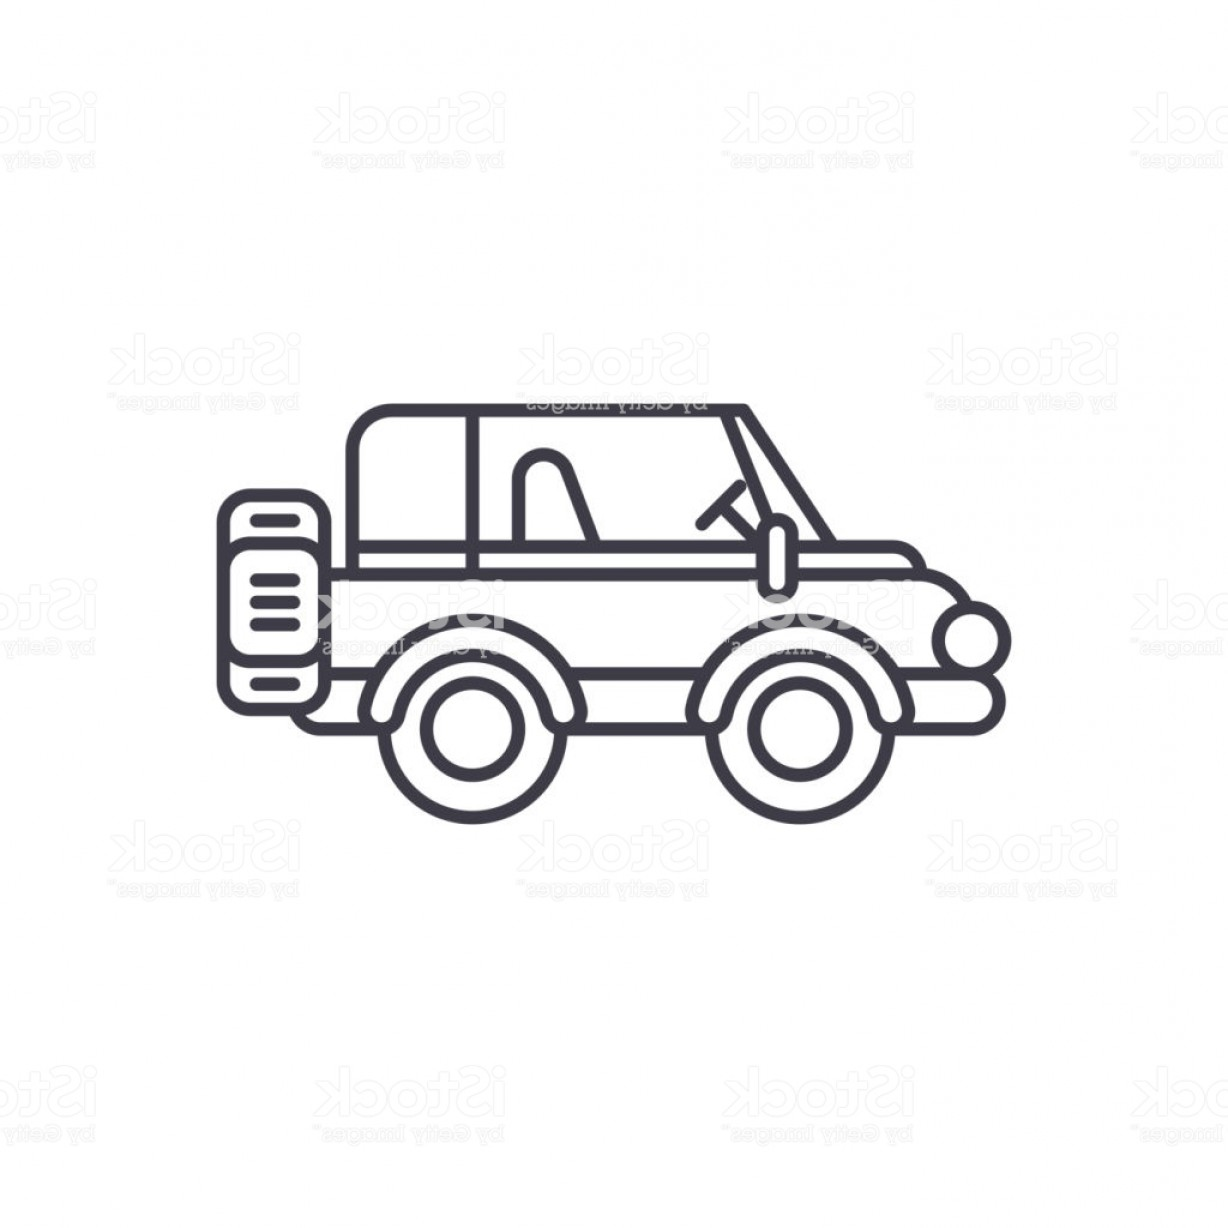 Vector Clip Art Of Jeep: Safari Jeep Line Icon Concept Safari Jeep Vector Linear Illustration Symbol Sign Gm